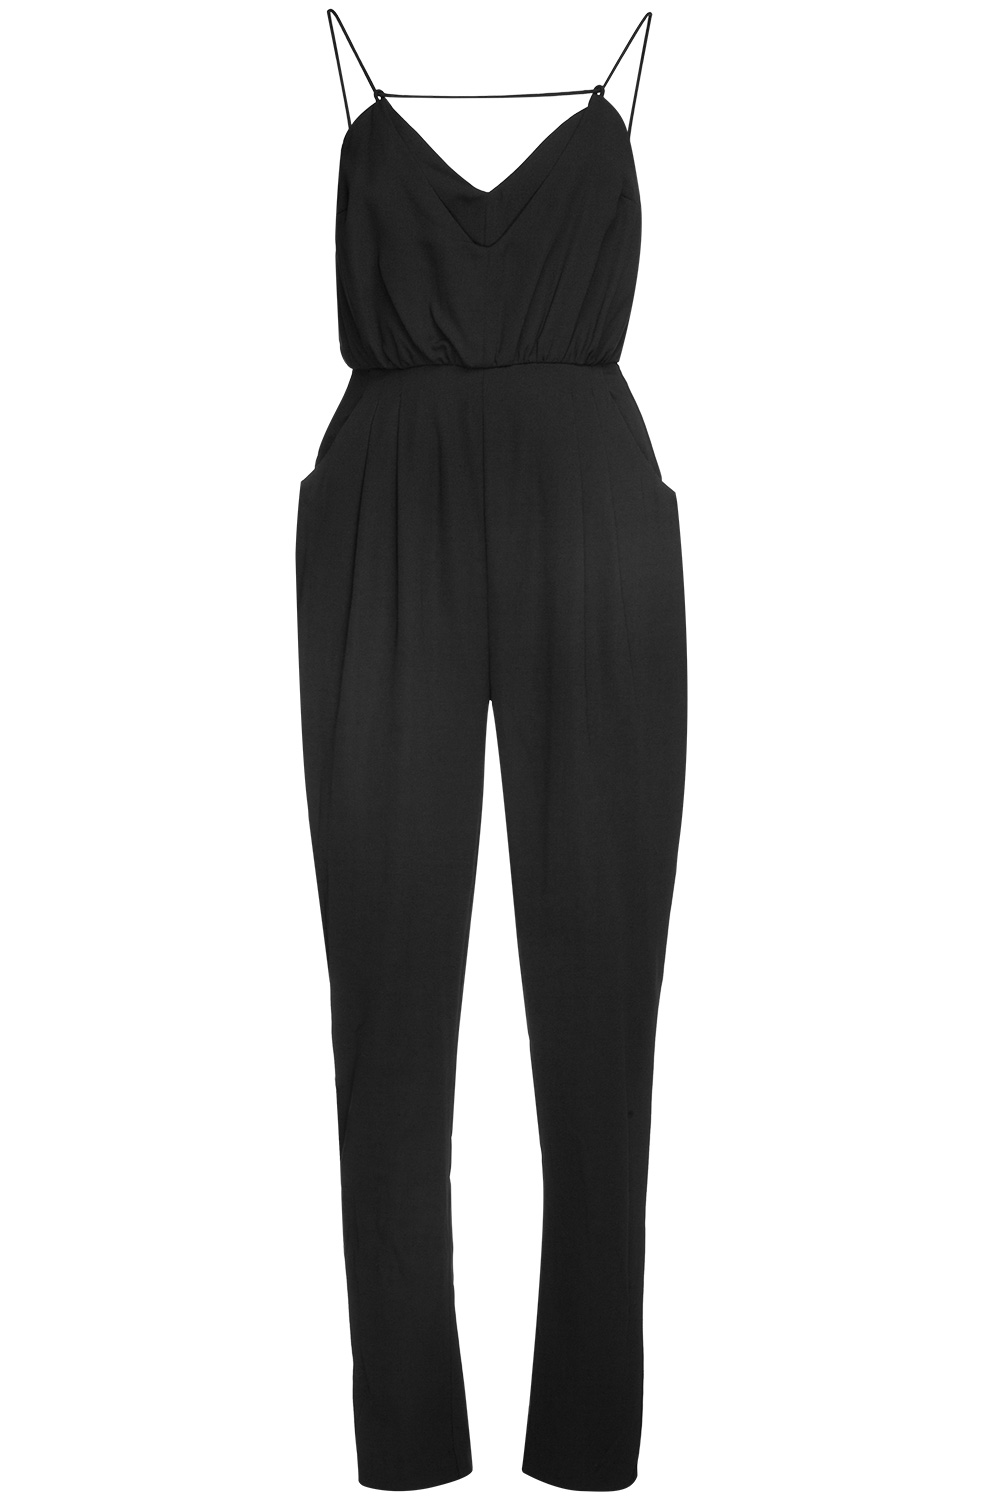 d12ee4b5eea3 ... finders-keepers-the-someday-jumpsuit-black